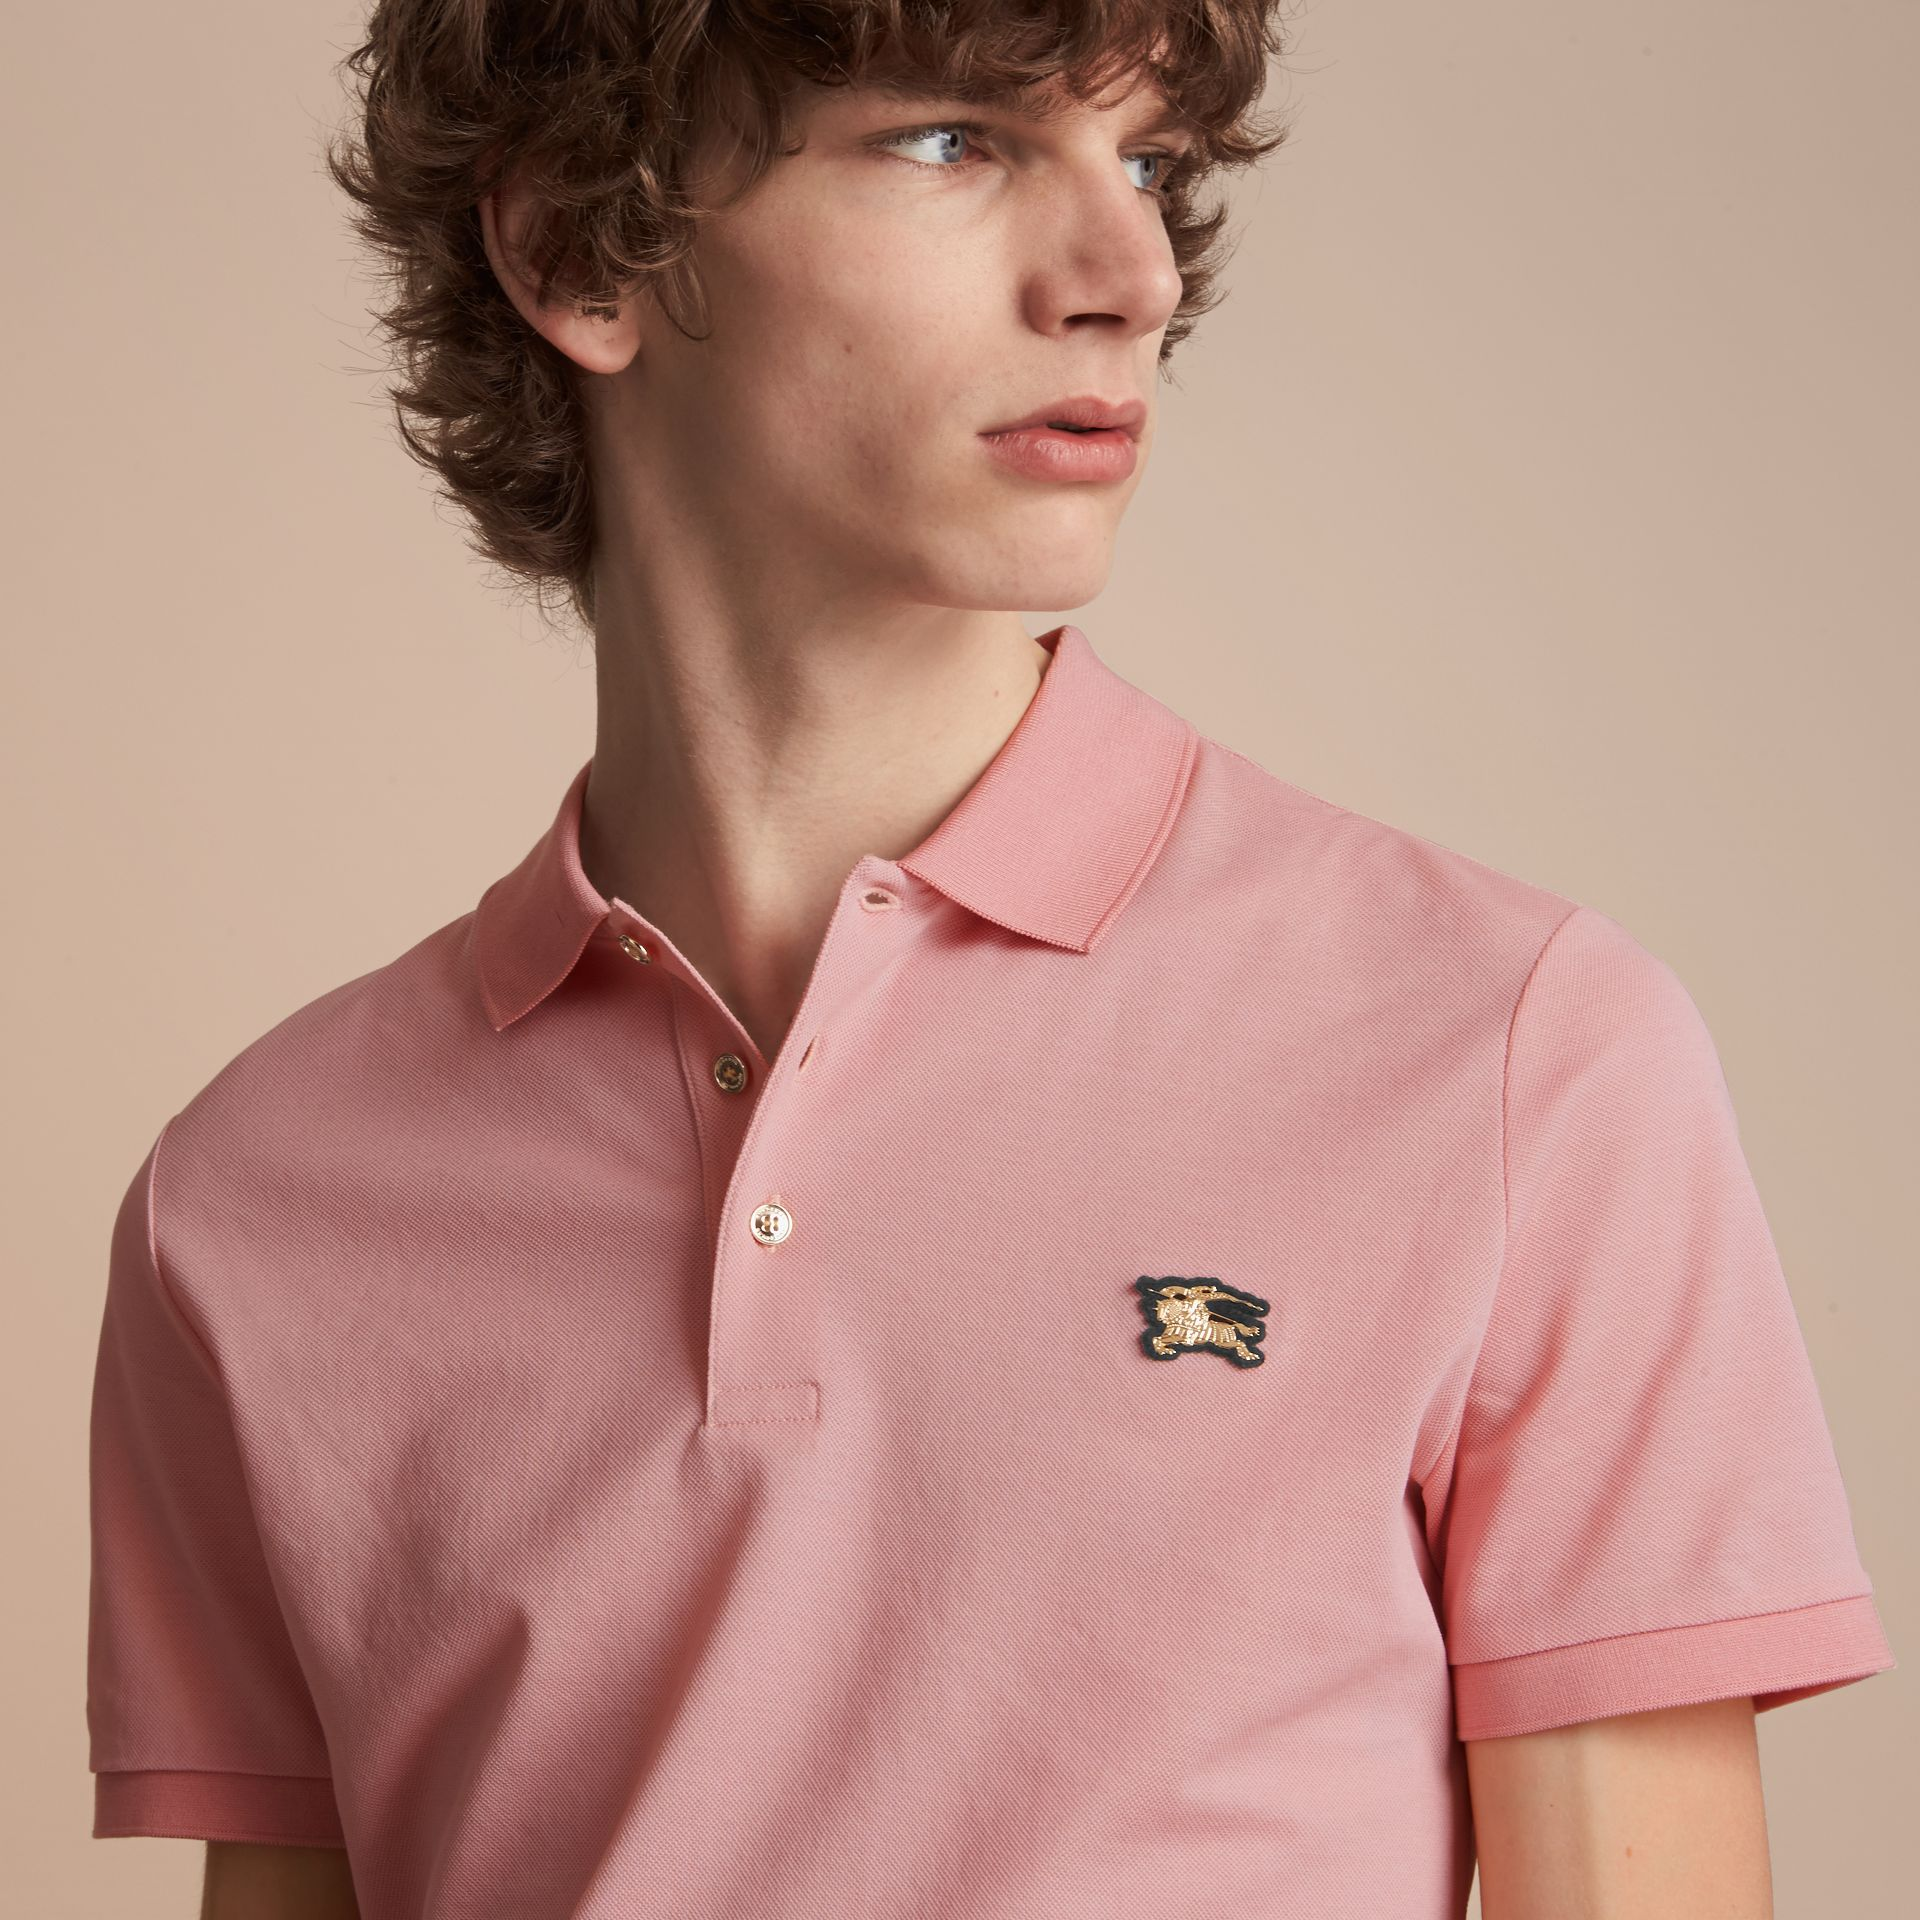 Cotton Piqué Polo Shirt in Chalk Pink - Men | Burberry - gallery image 5